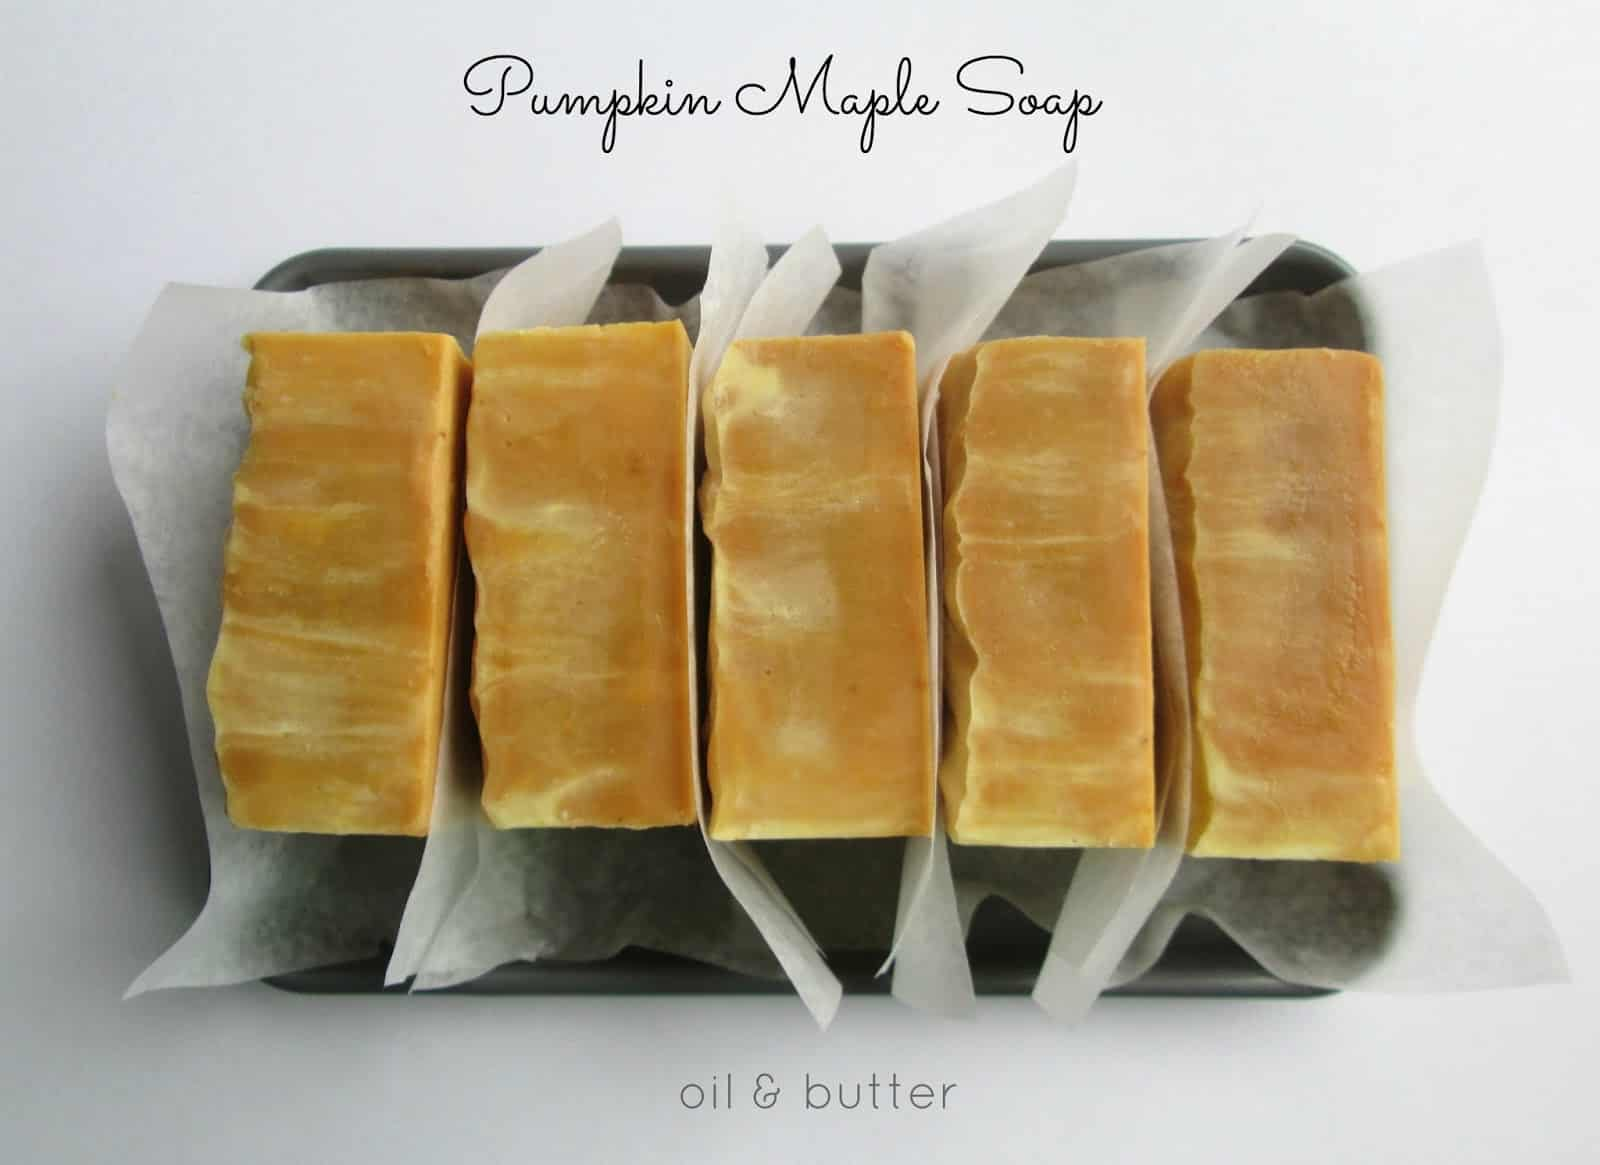 Pumpkin maple soap bar favor diy